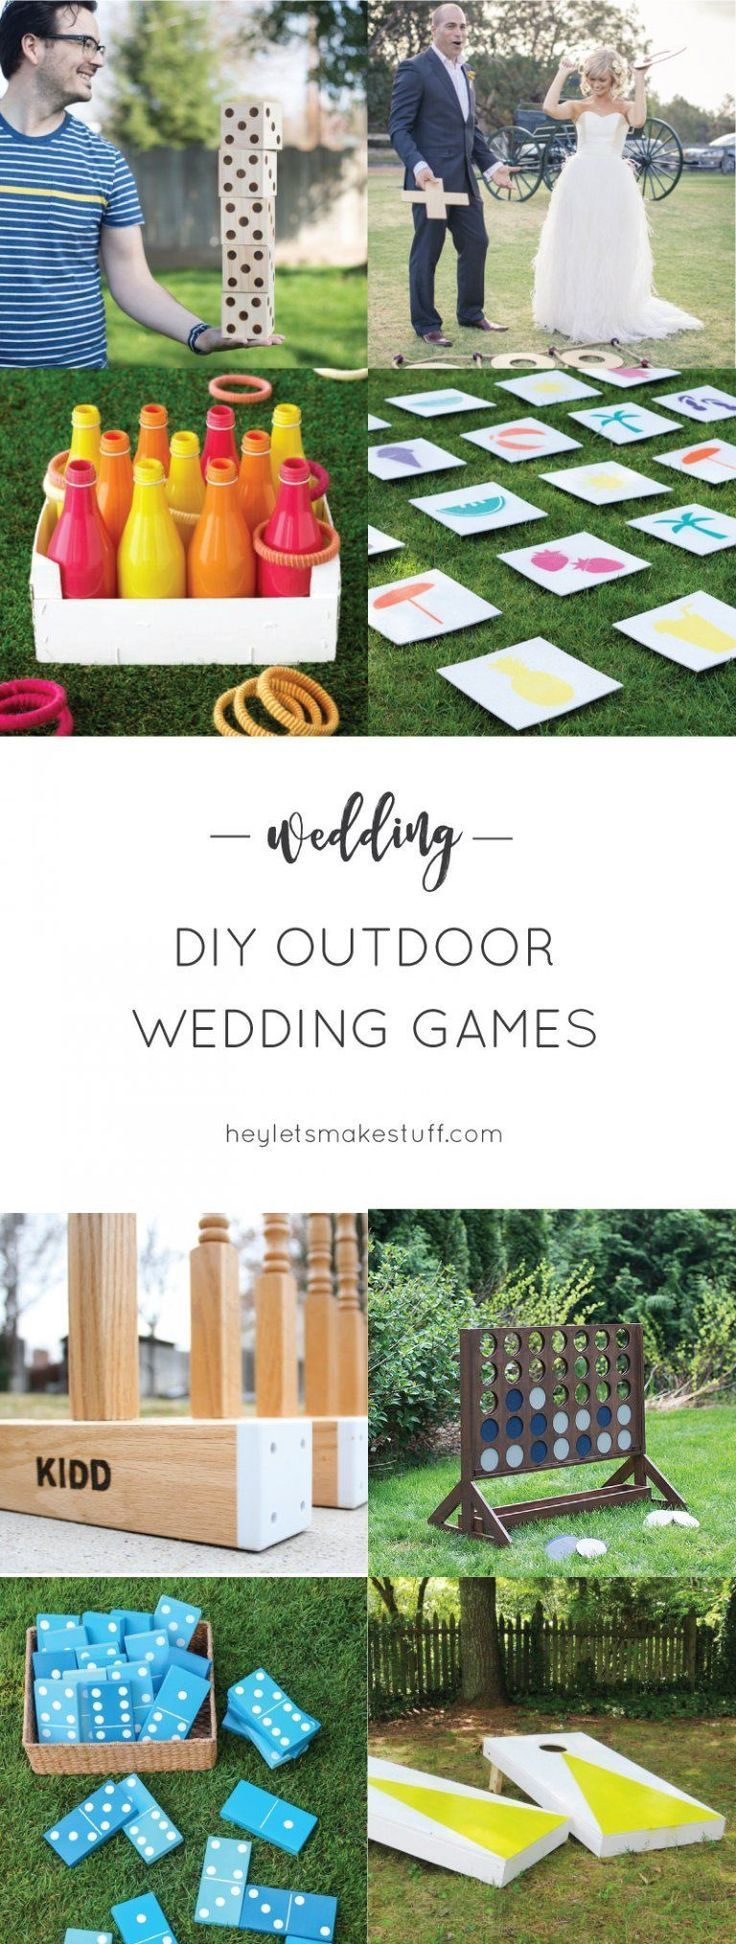 If youre having an outdoor wedding lawn games are a fun way to make sure your  If youre having an outdoor wedding lawn games are a fun way to make sure your